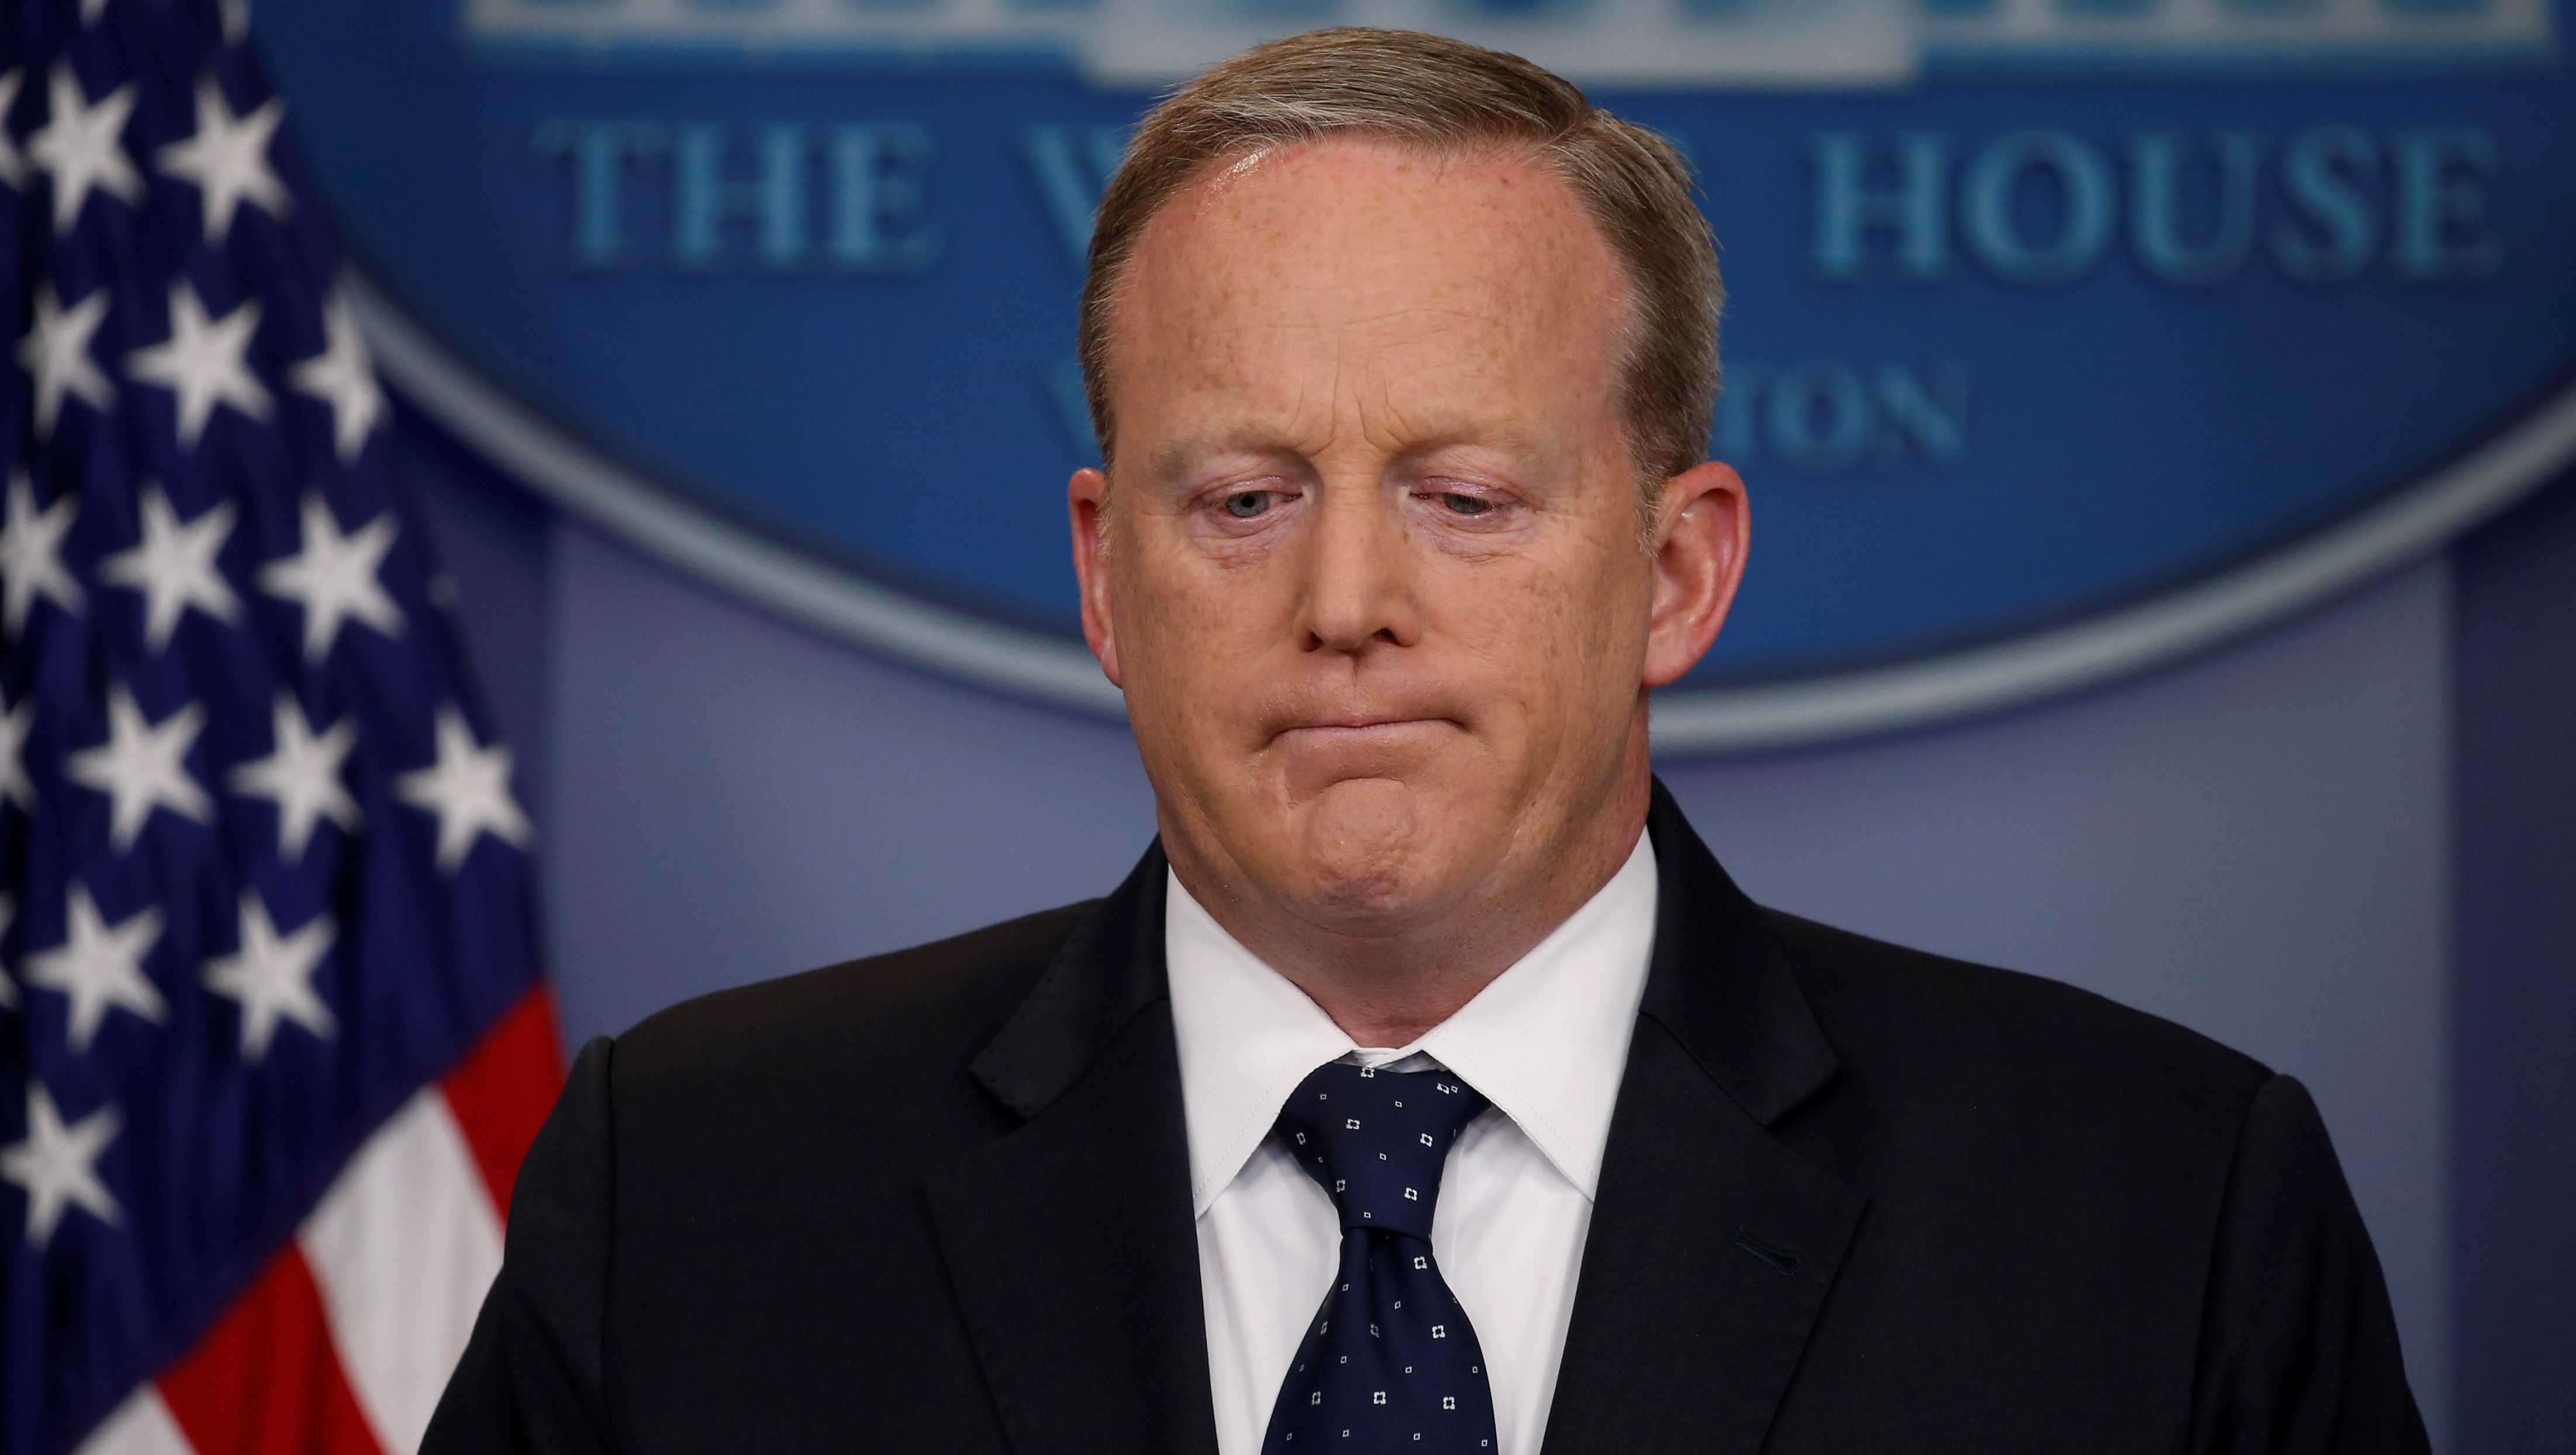 White House Press Secretary Sean Spicer reacts to a reporter's question during his daily briefing at the White House in Washington, U.S., June 20, 2017.  REUTERS/Jonathan Ernst - RC1C8593F300